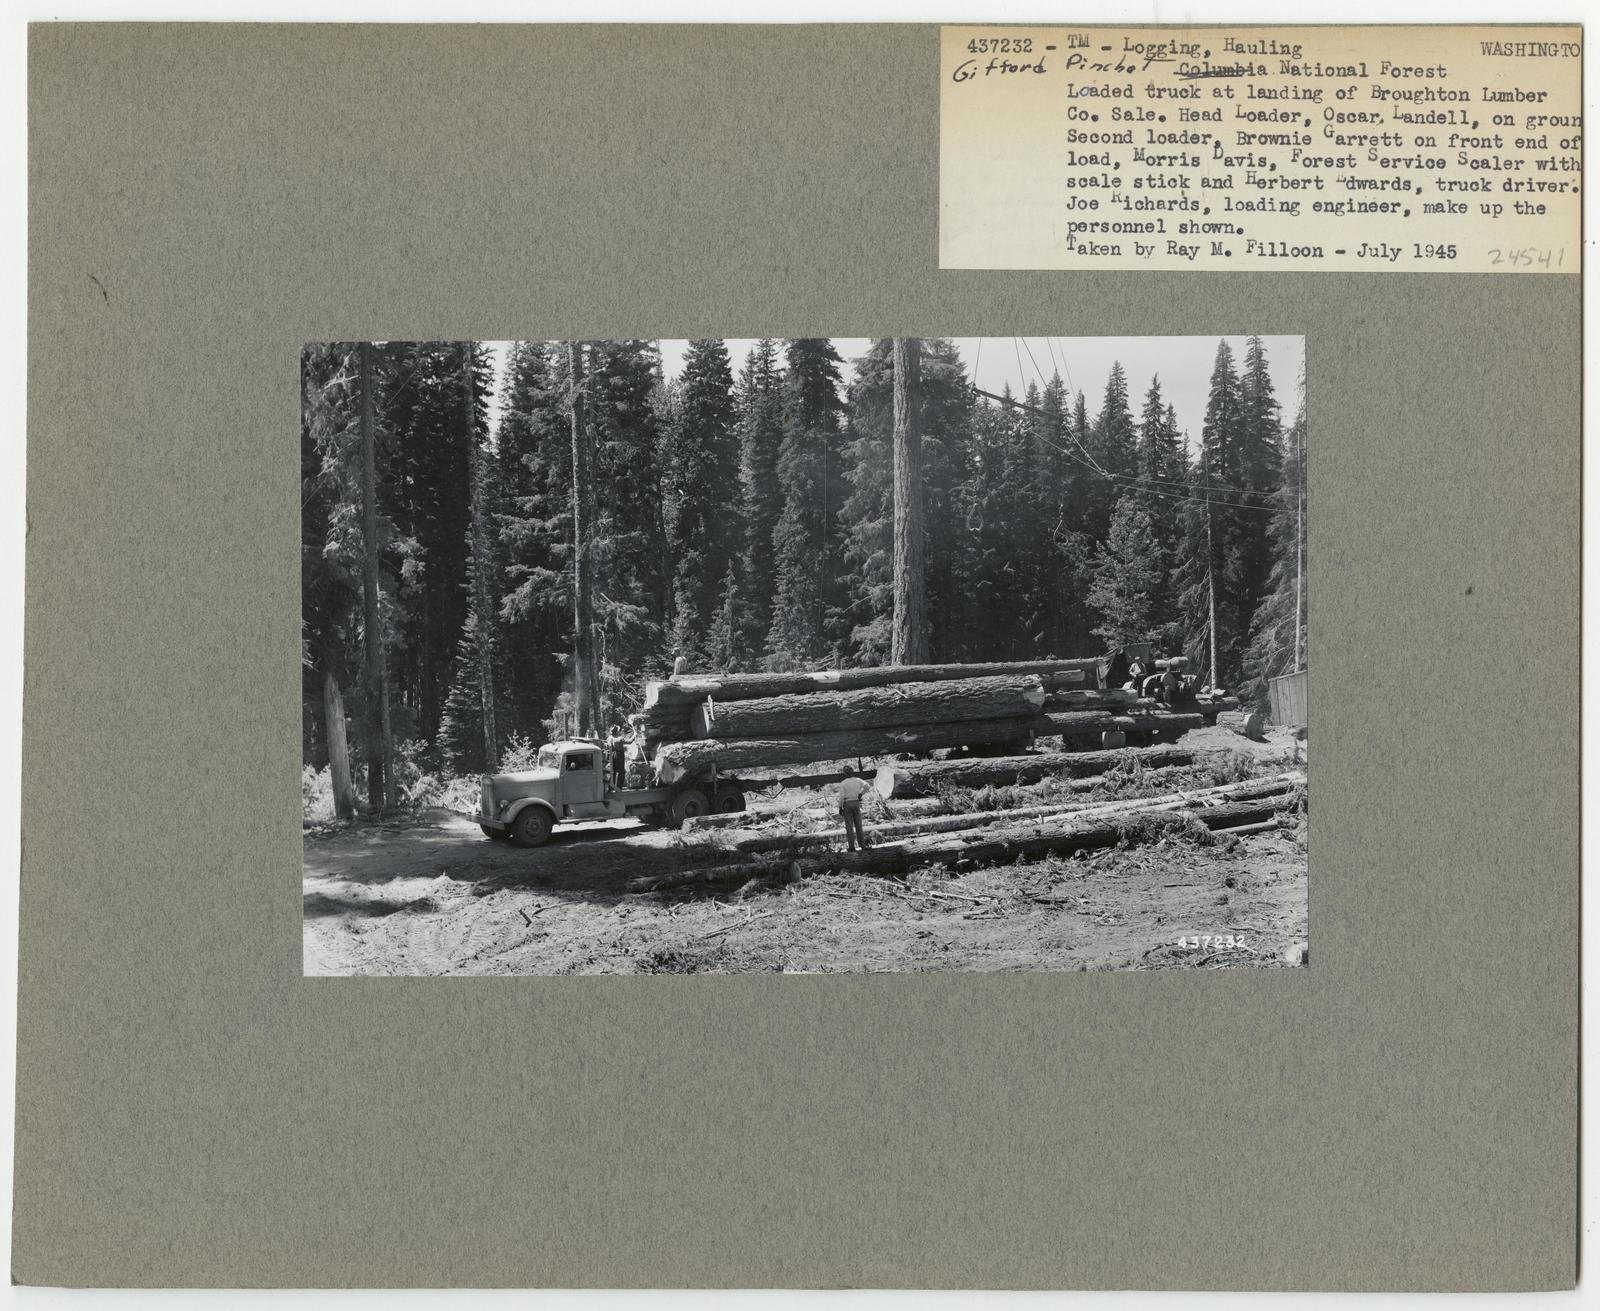 Logging: Transportation: Trucks - Washington